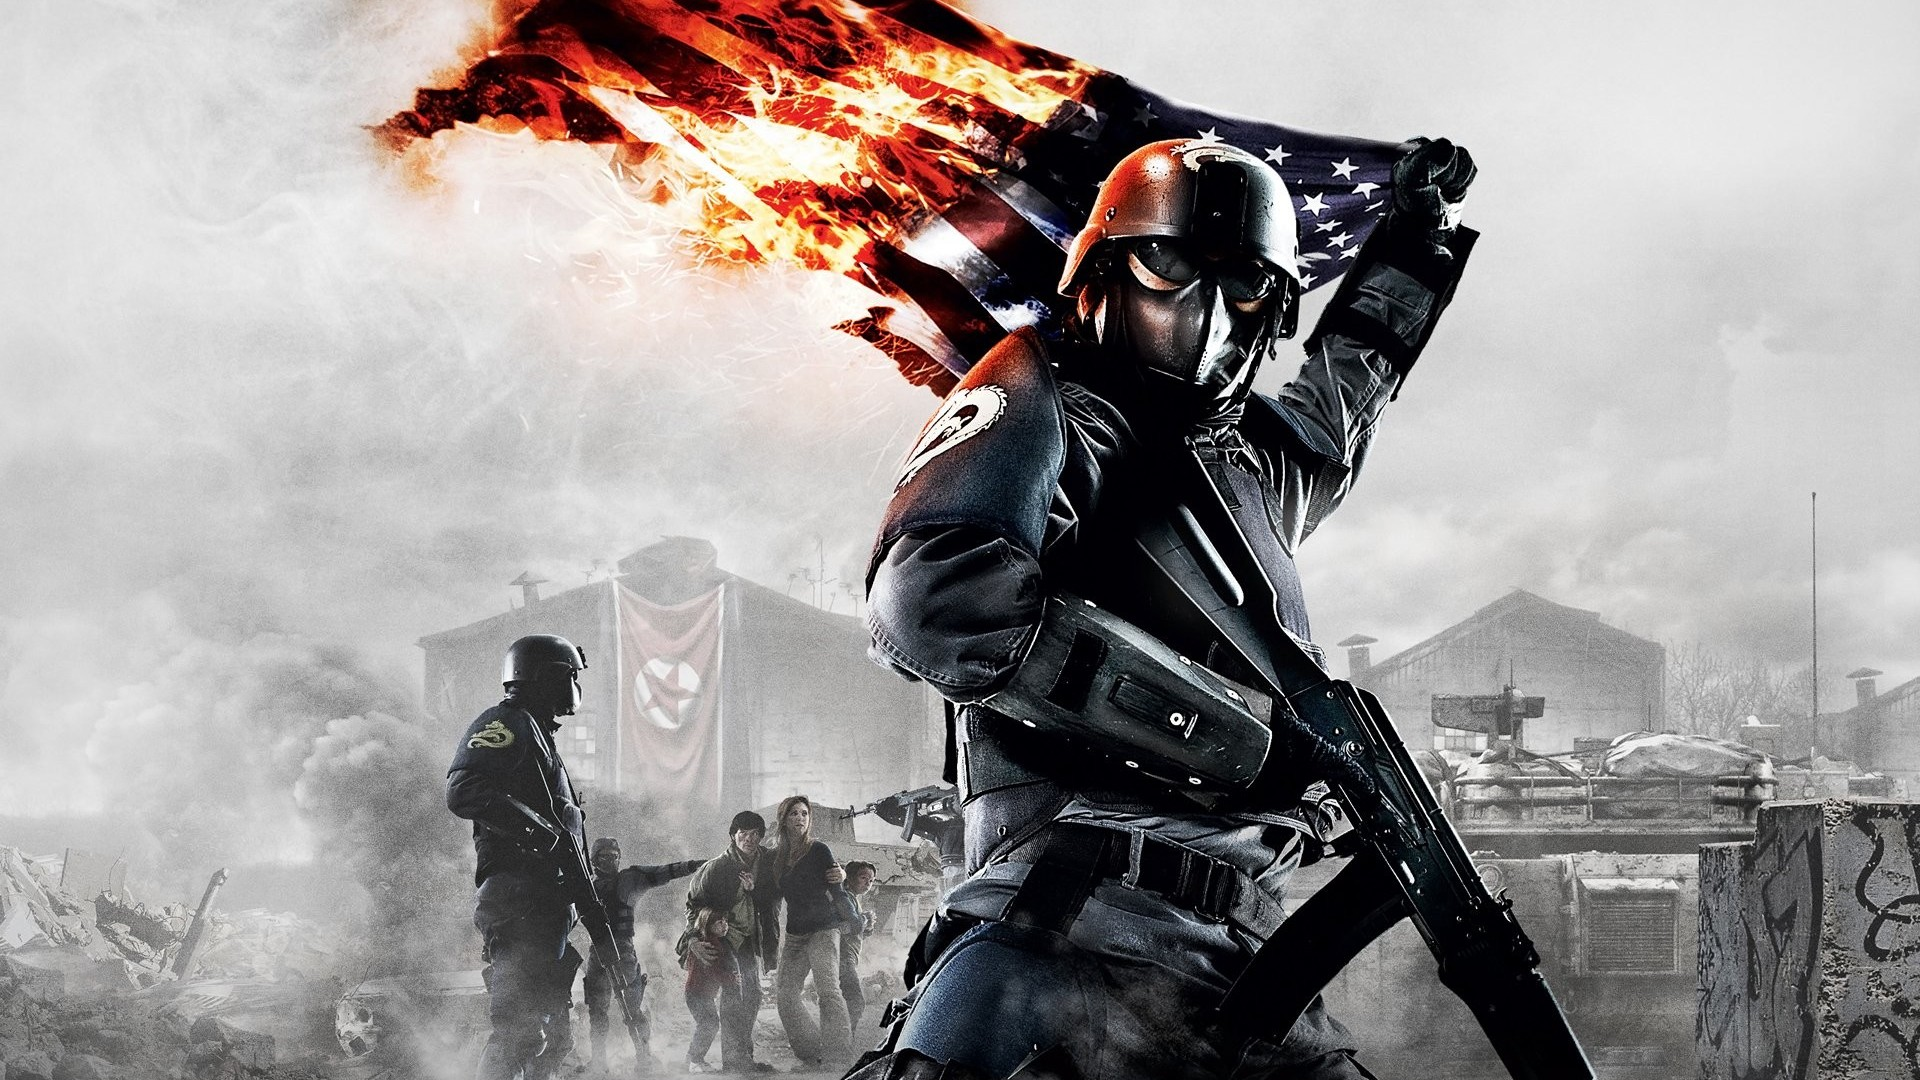 Unnamed Cool Game Hd Games Wallpapers Xpx Wallpaper 1920x1080px